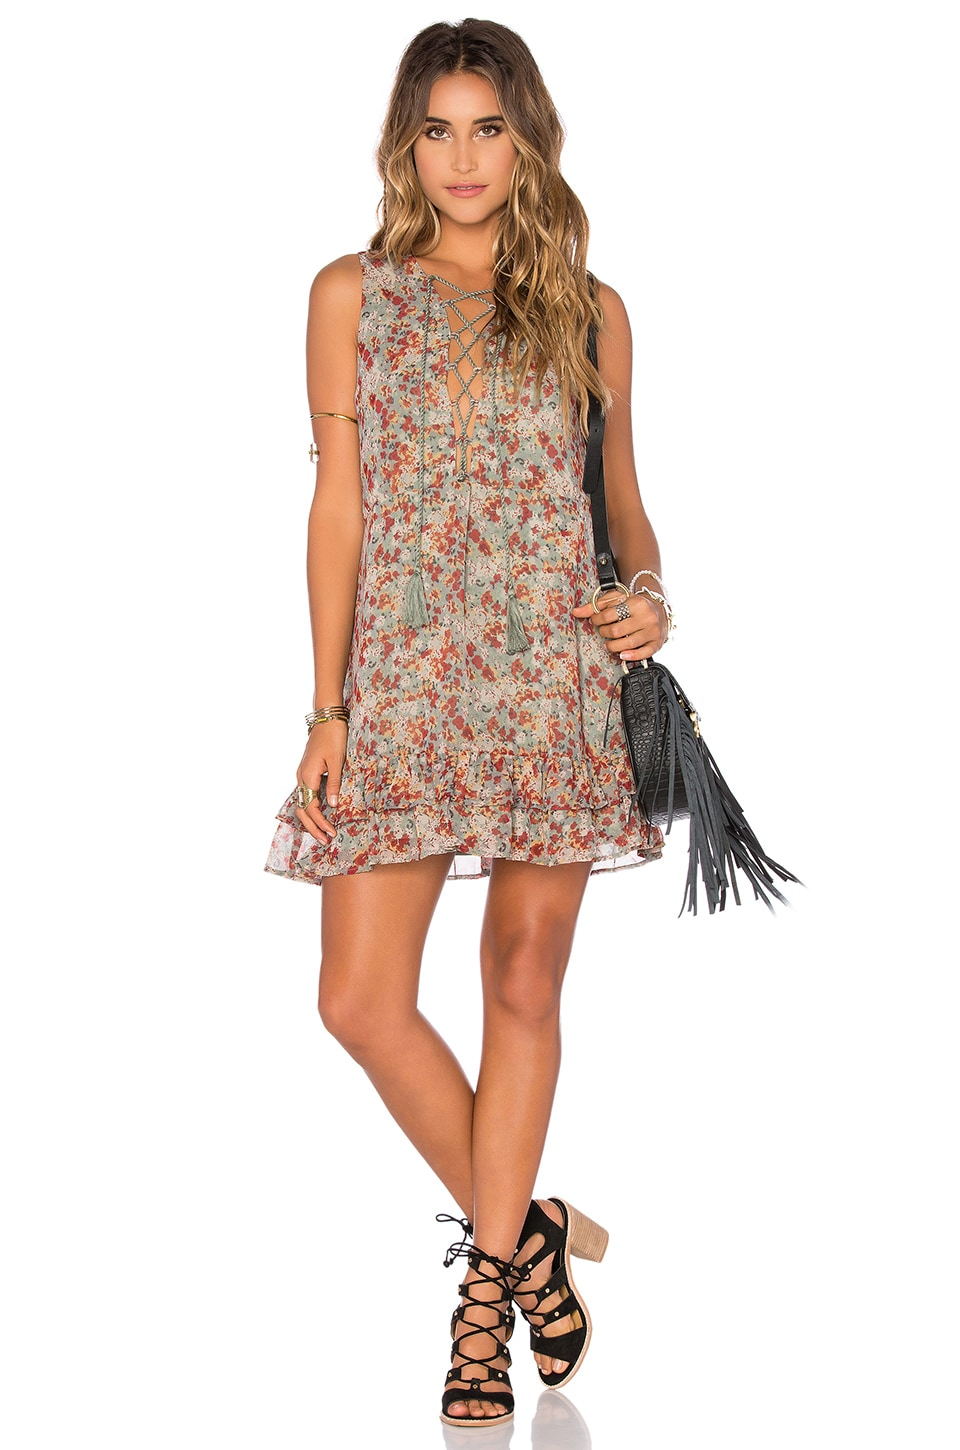 Tularosa x REVOLVE Adrienne Shift Dress in Spring Floral